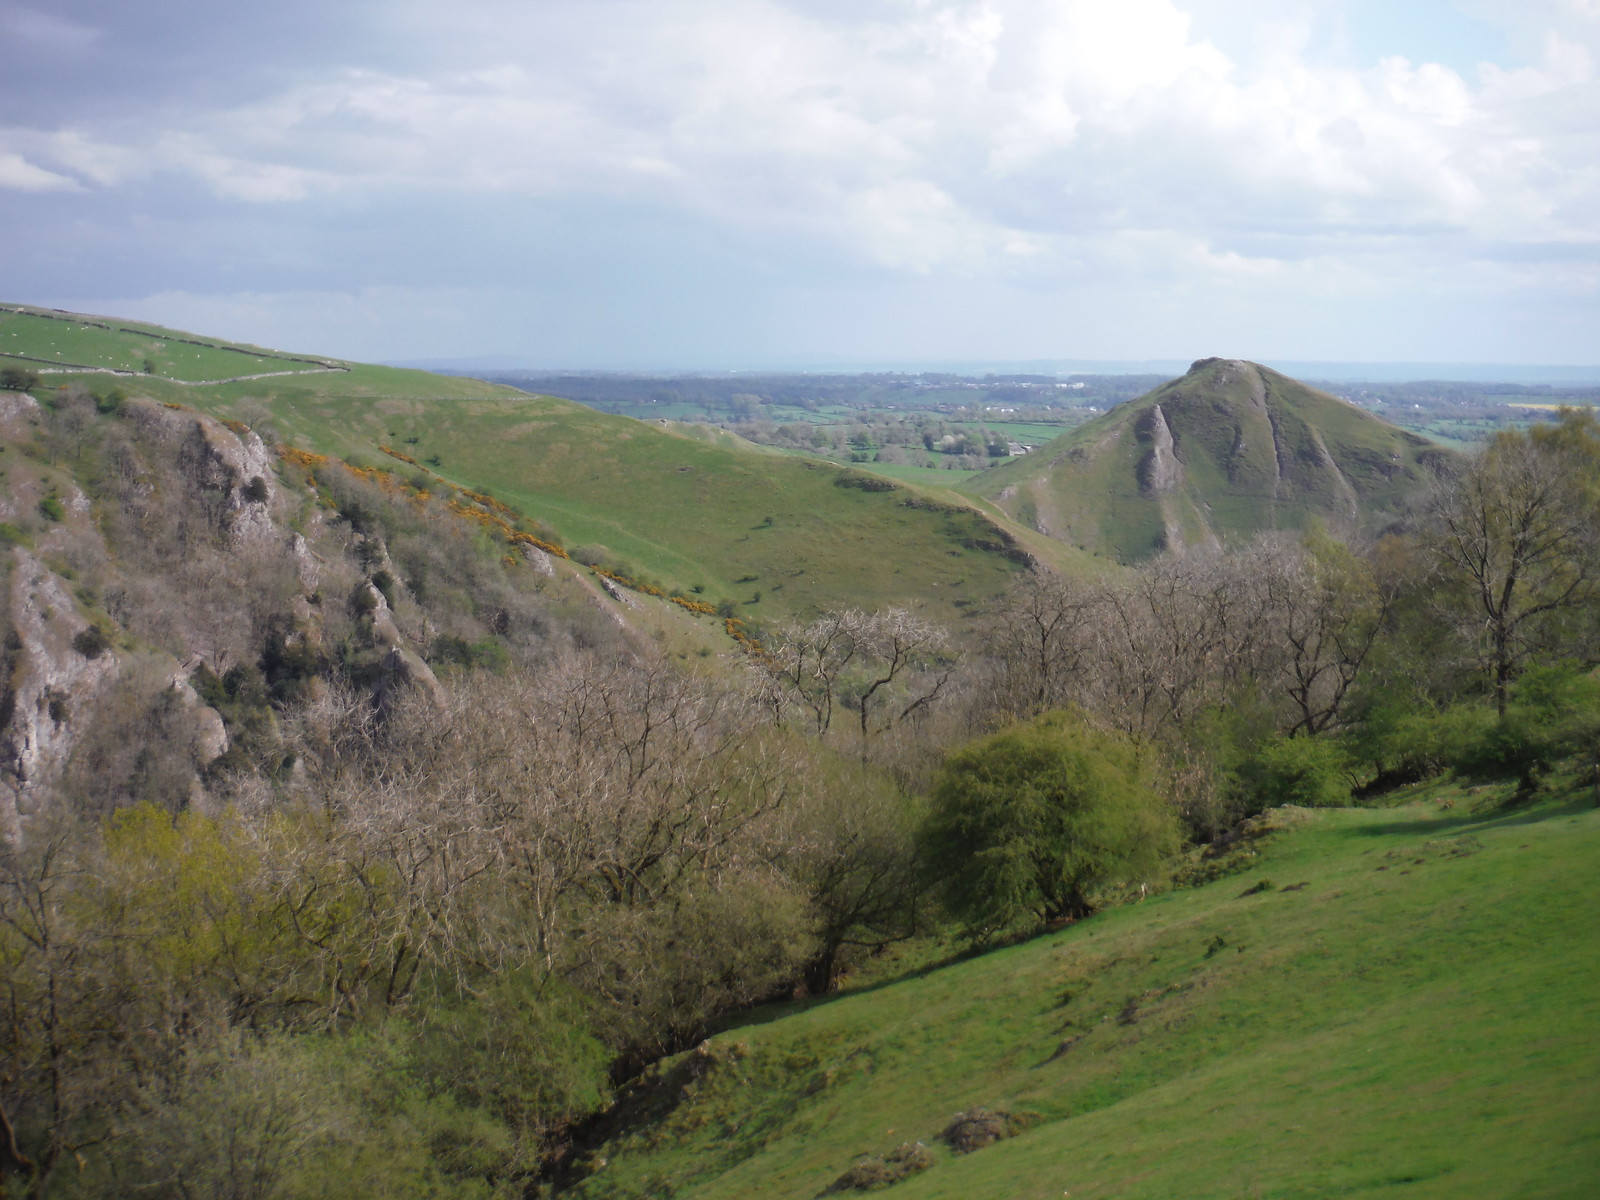 View along Dovedale to Thorpe Cloud from Ilam Tops SWC Walk 326 - Dovedale (Ashbourne Circular)